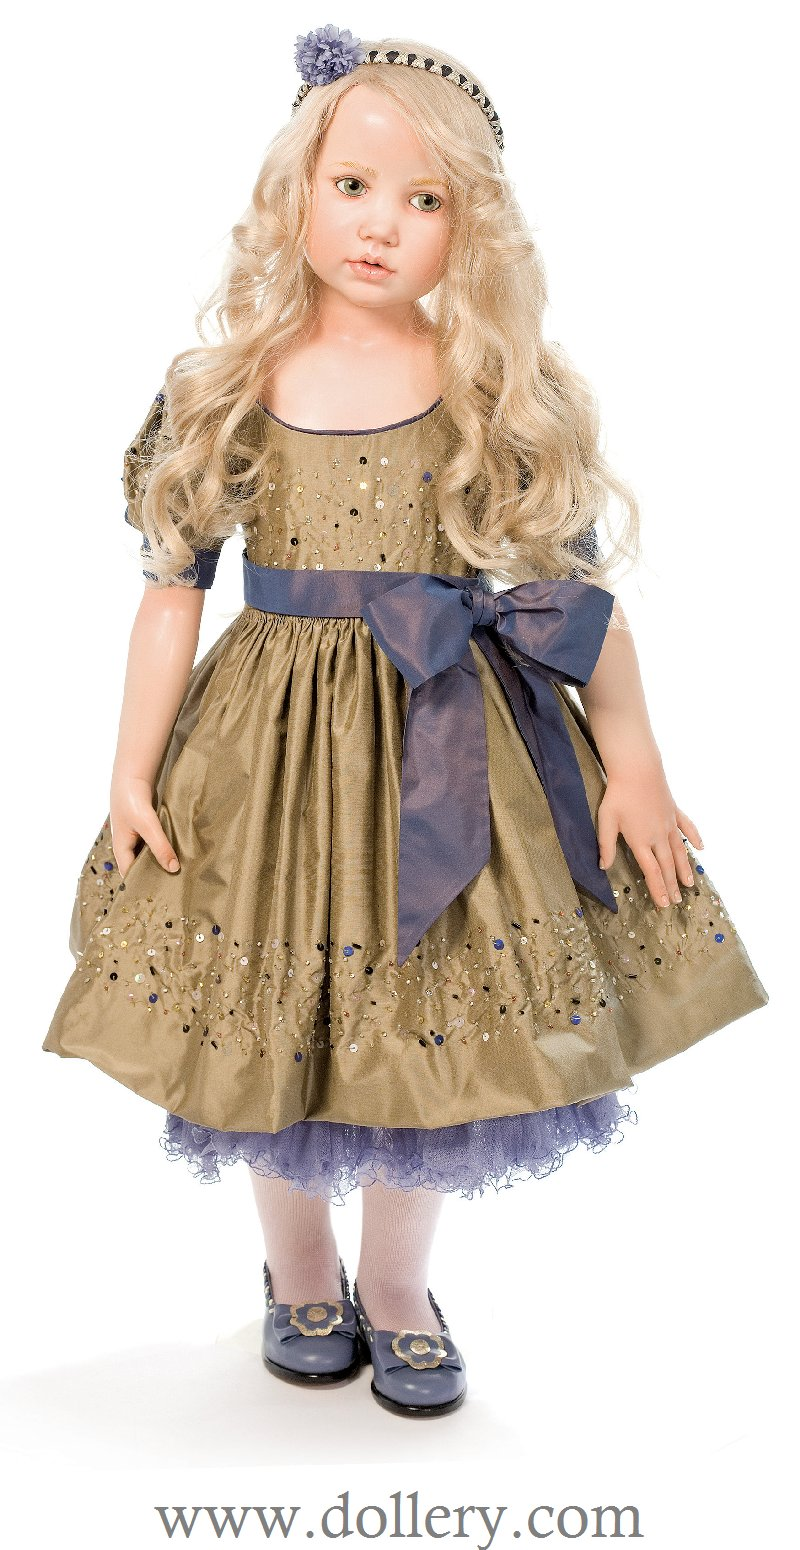 Greyish Green Eyes Silk Dress Embroidered With Sequins Bow Made From  French Silk Taffeta Underdress With Silk Ruffles Leather Shoes